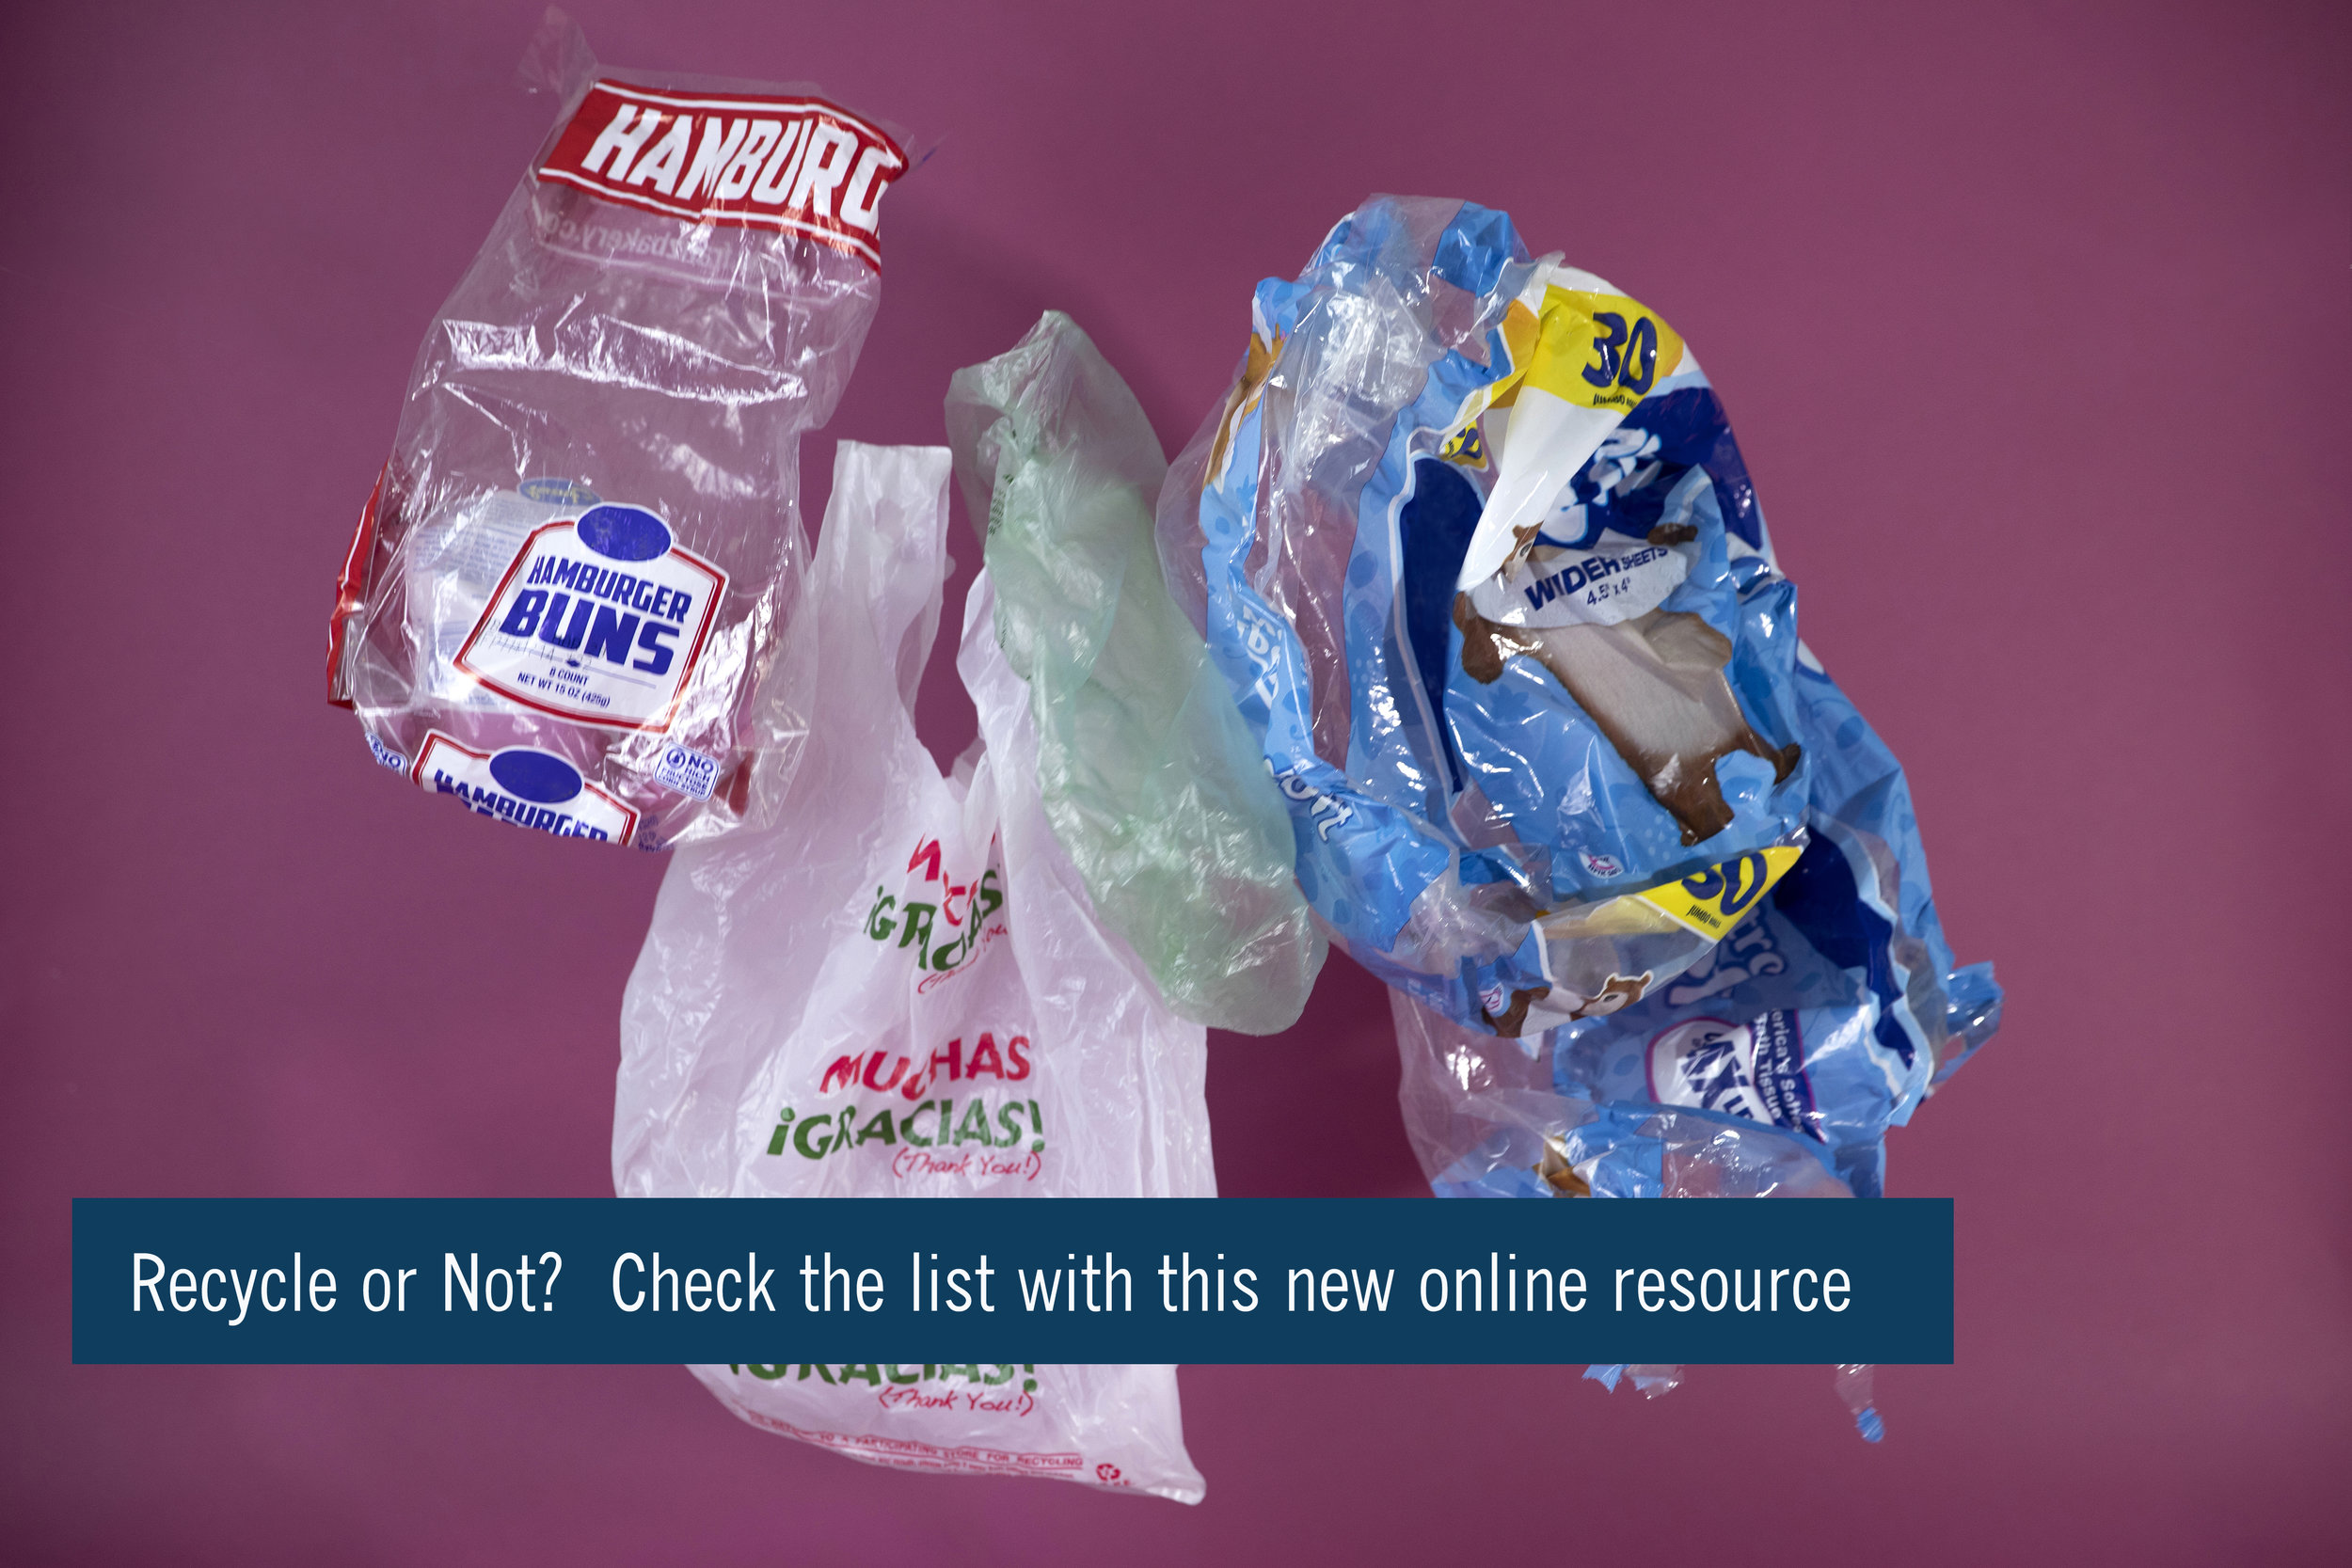 Metro's new recycling resource  RecycleorNot.org  is a super handy quick reference